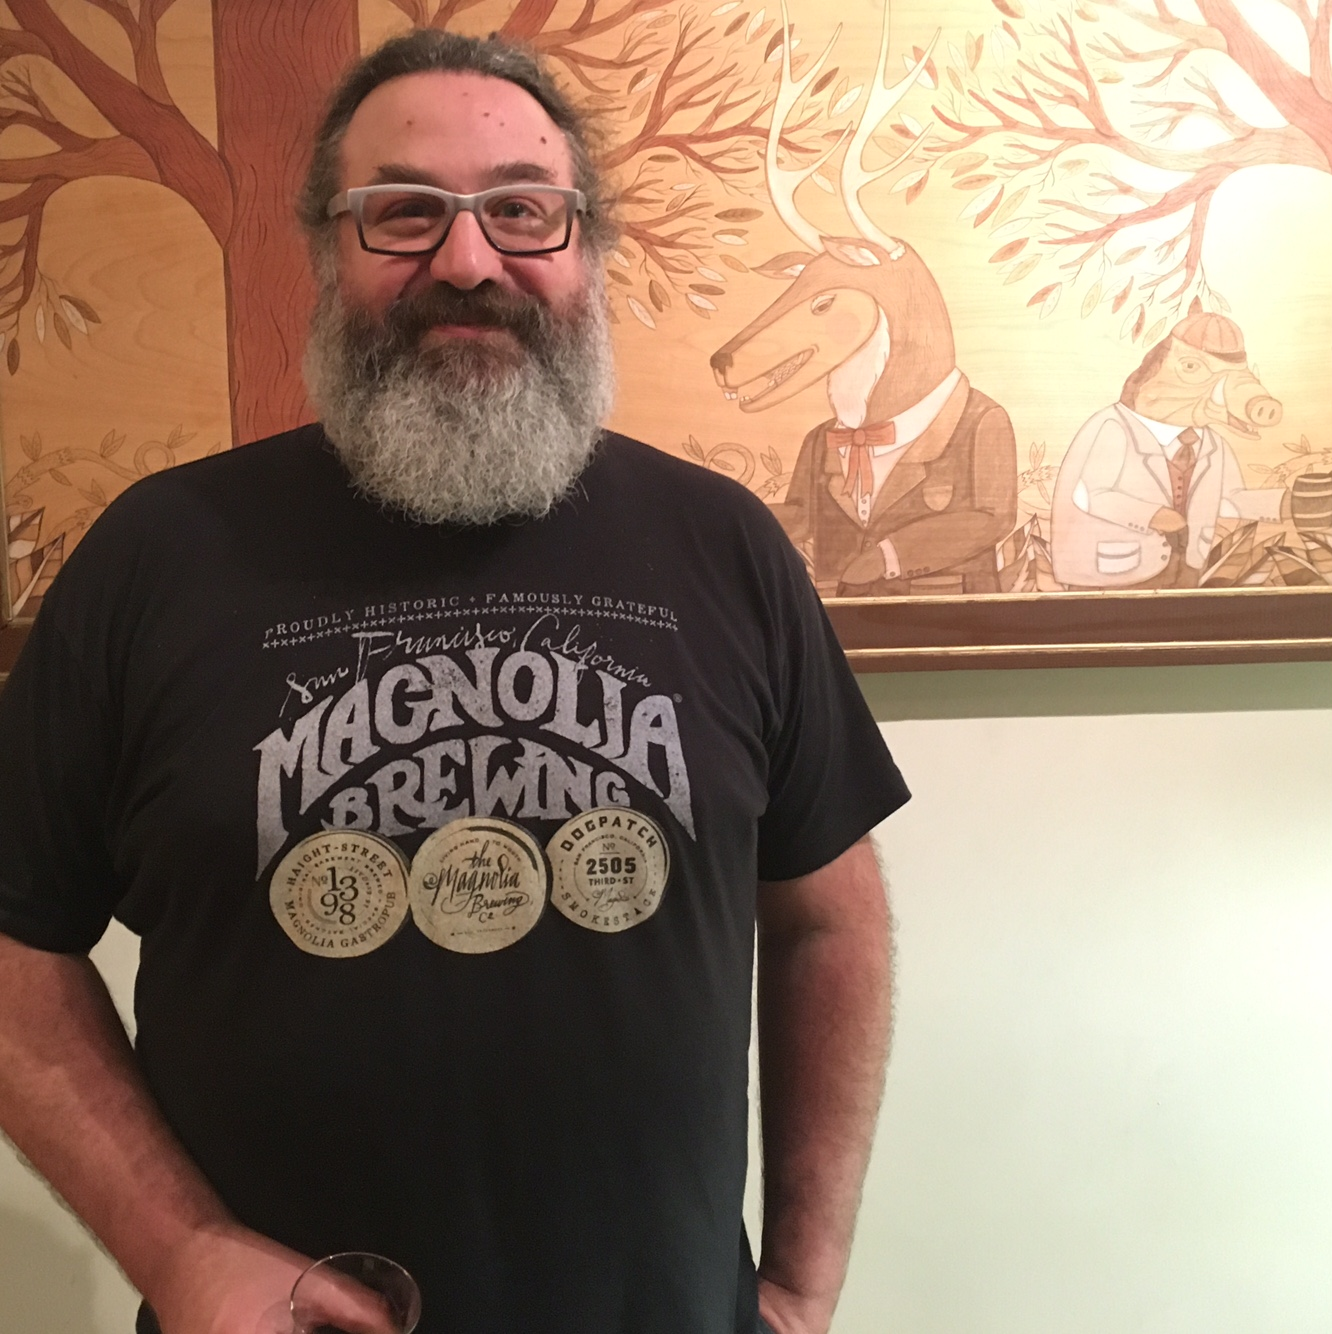 Magnolia Brewing Founder Dave McLean at Cheese Bar in February 2016. (photo by D.J. Paul)